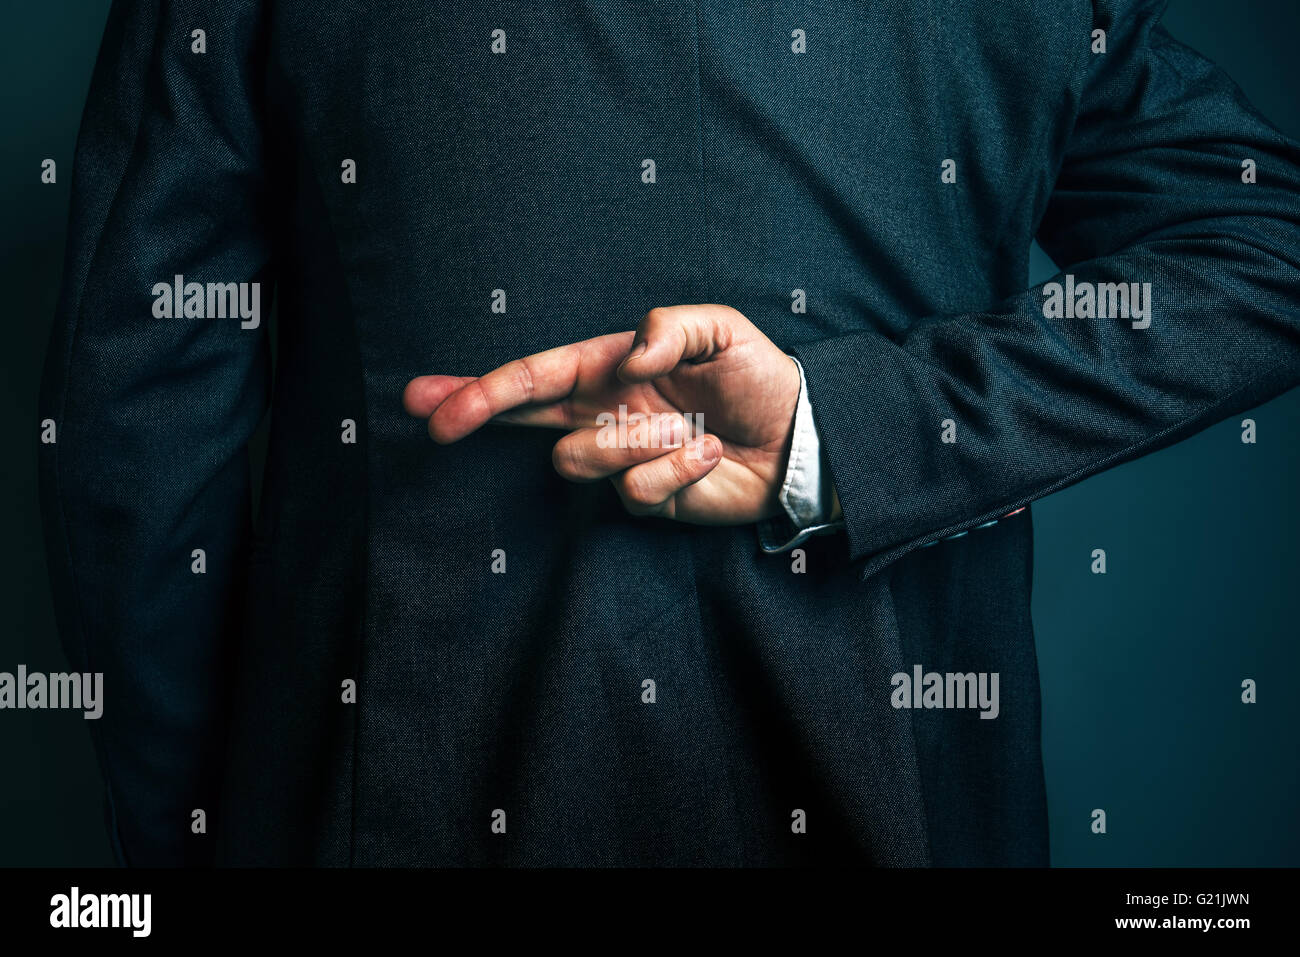 Dishonest businessman telling lies, lying businessperson holding fingers crossed behind his back - Stock Image